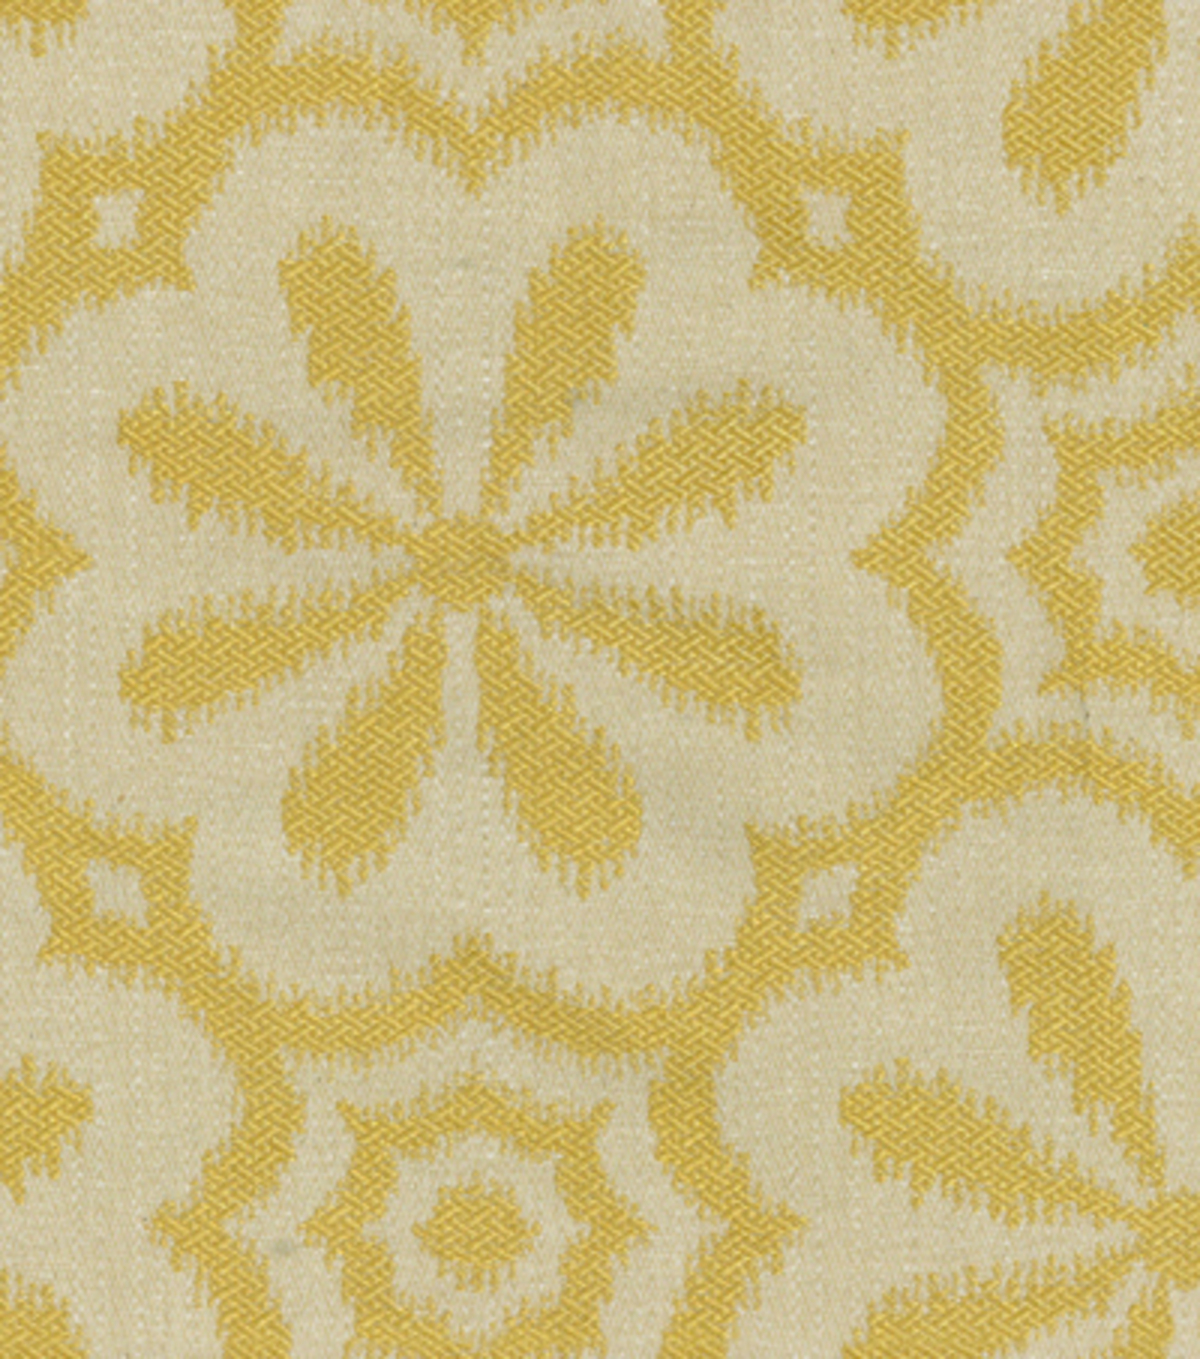 Home Decor 8\u0022x8\u0022 Fabric Swatch-HGTV HOME Mod Metal Gold